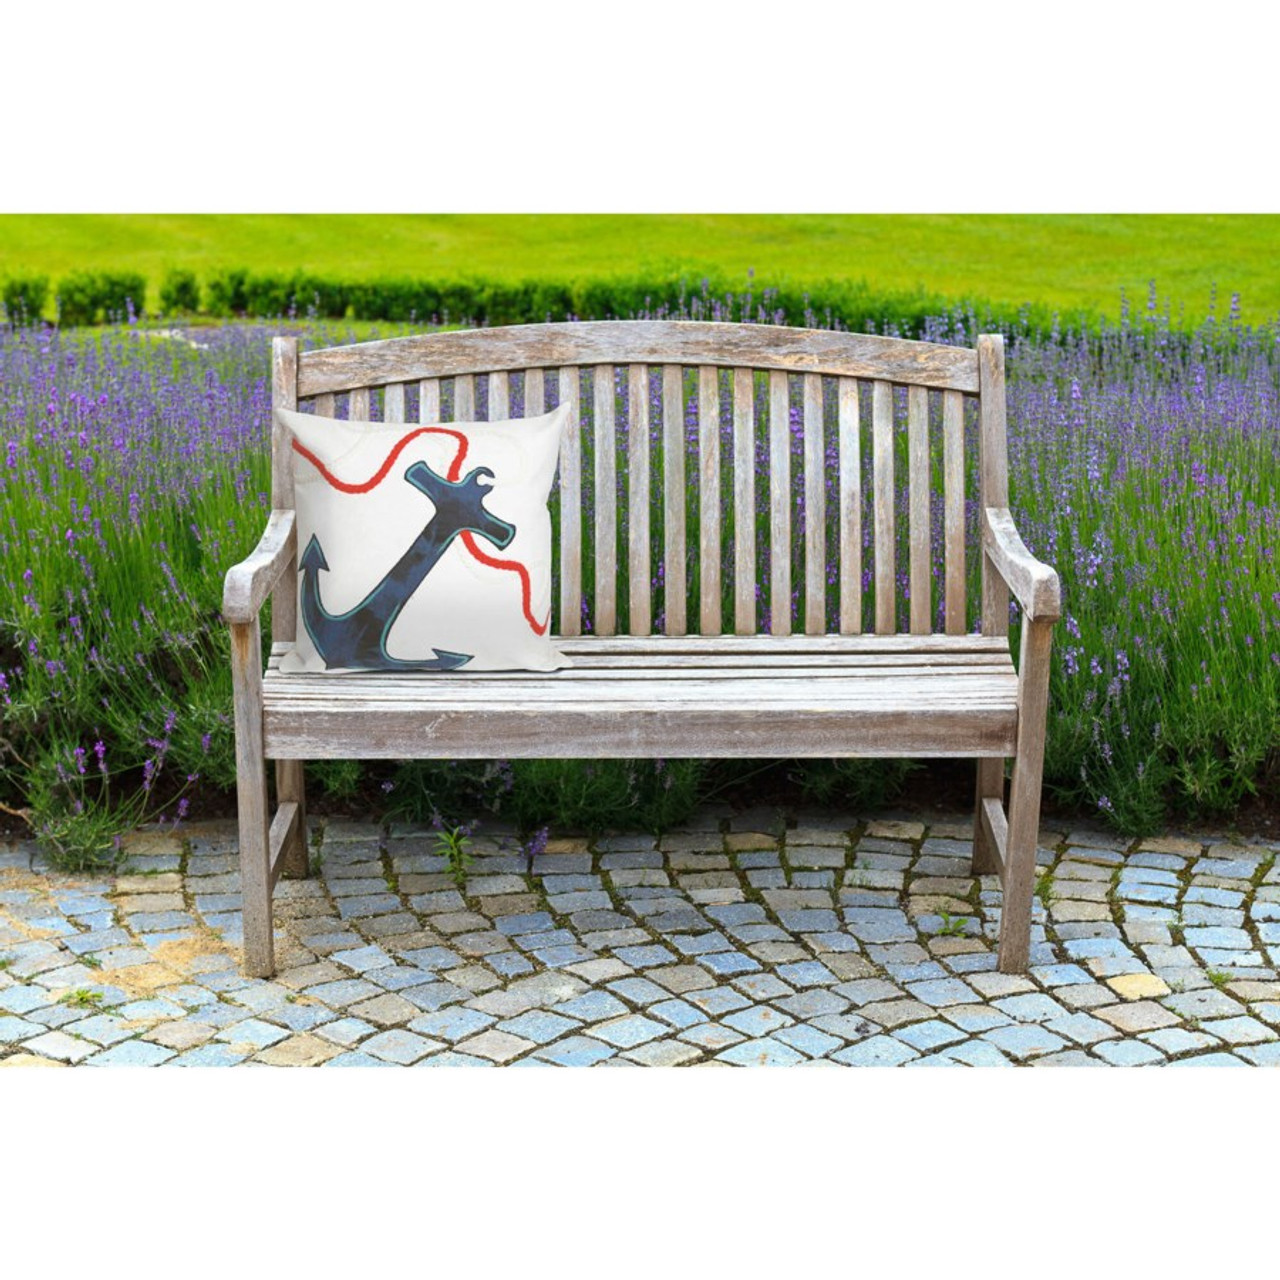 Visions White Anchor Indoor/Outdoor Throw Pillow -  Square Lifestyle